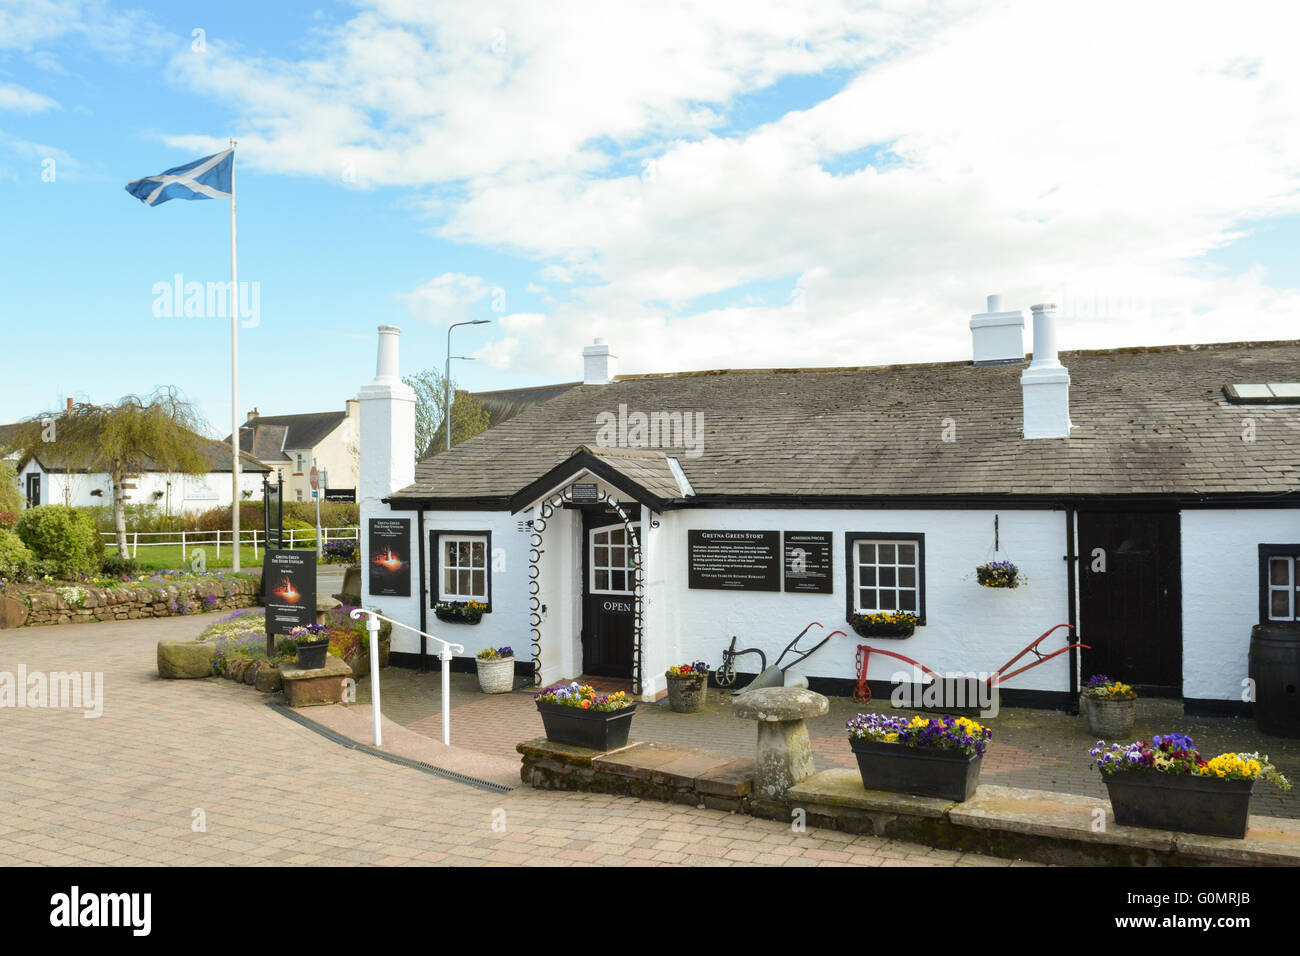 The famous Old Blacksmiths Shop in Gretna Green, Scotland, UK, Europe - Stock Image